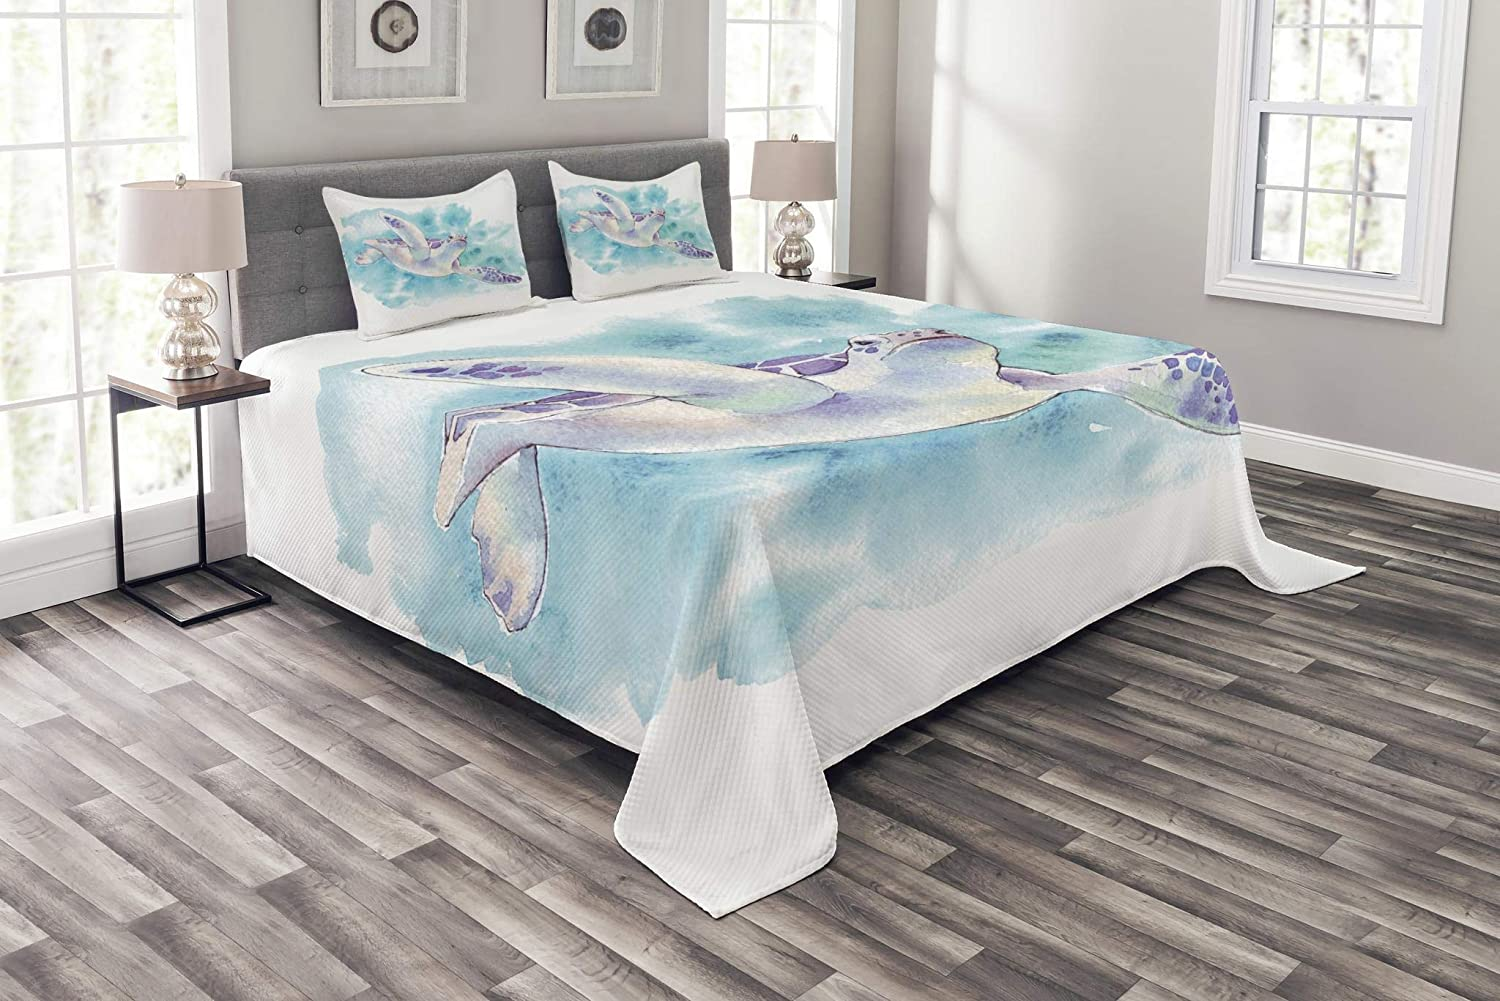 Lunarable Ocean Bedspread, Turtle Swimming Sea Underwater Brushstroke Hazy Blurry Soft Watercolor Design, Decorative Quilted 3 Piece Coverlet Set with 2 Pillow Shams, King Size, Turquoise Lilac